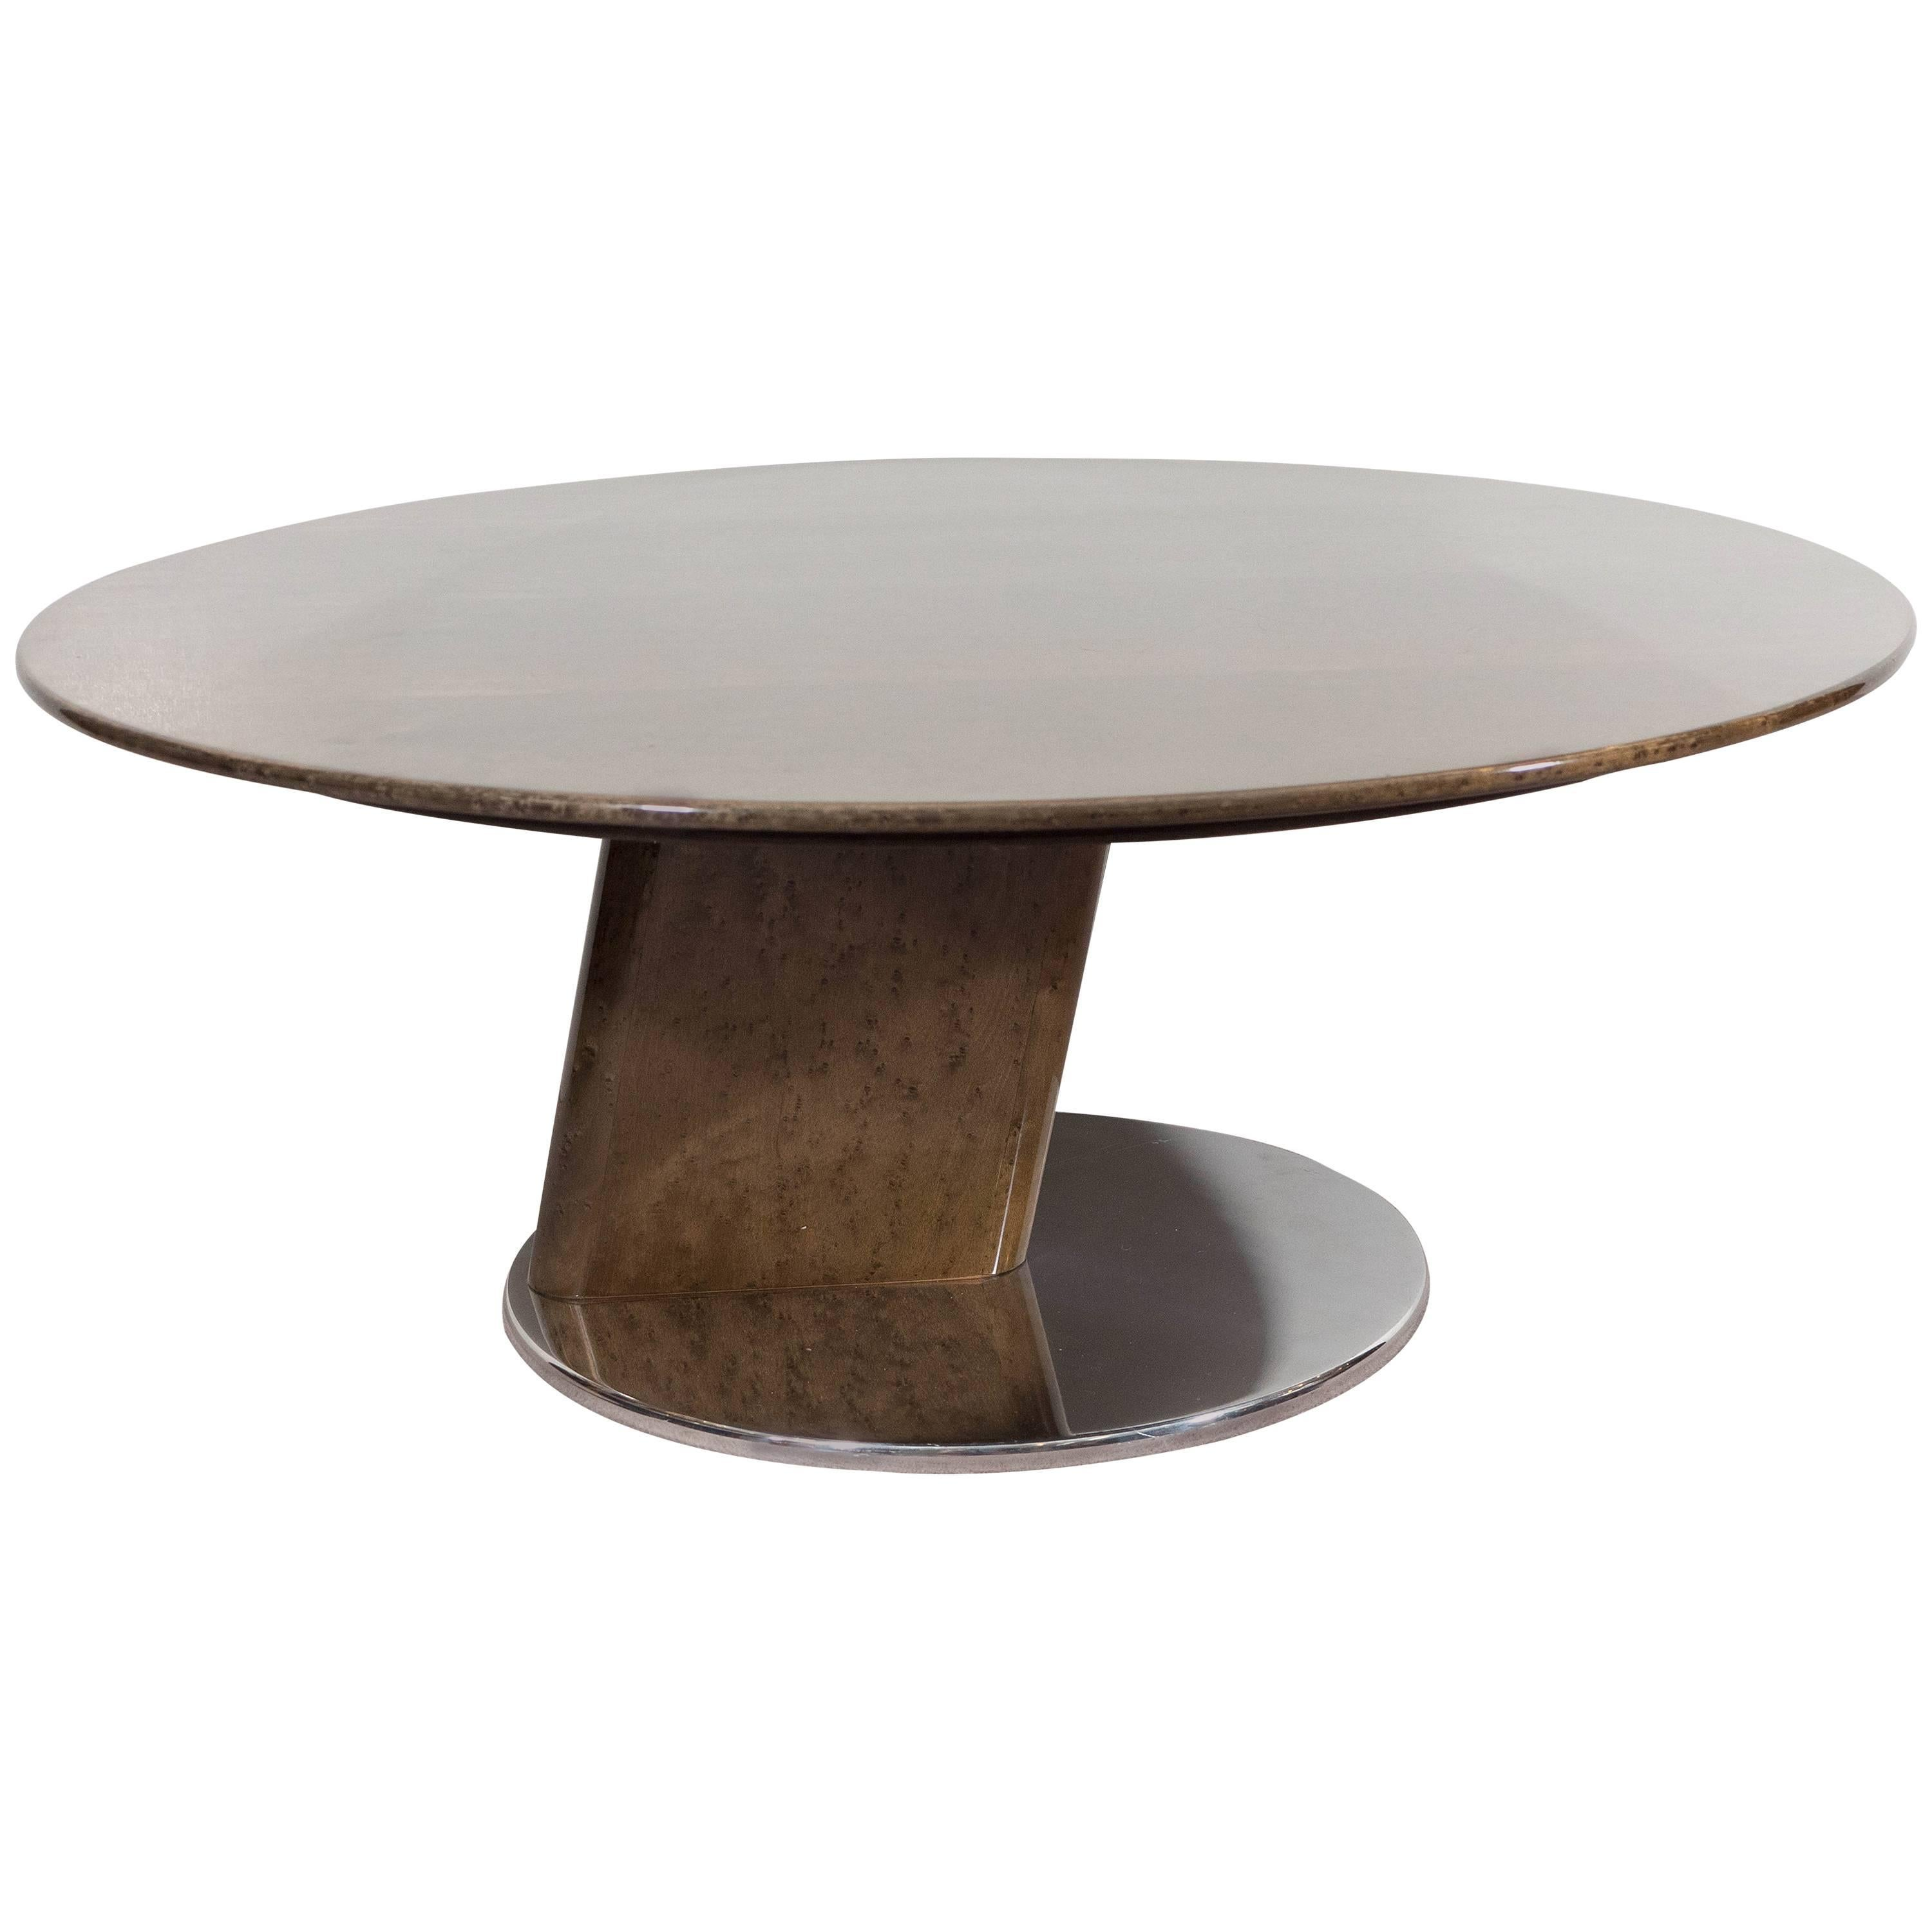 A Saporiti Modernist Coffee Table in Lacquered Birdseye Maple on Steel